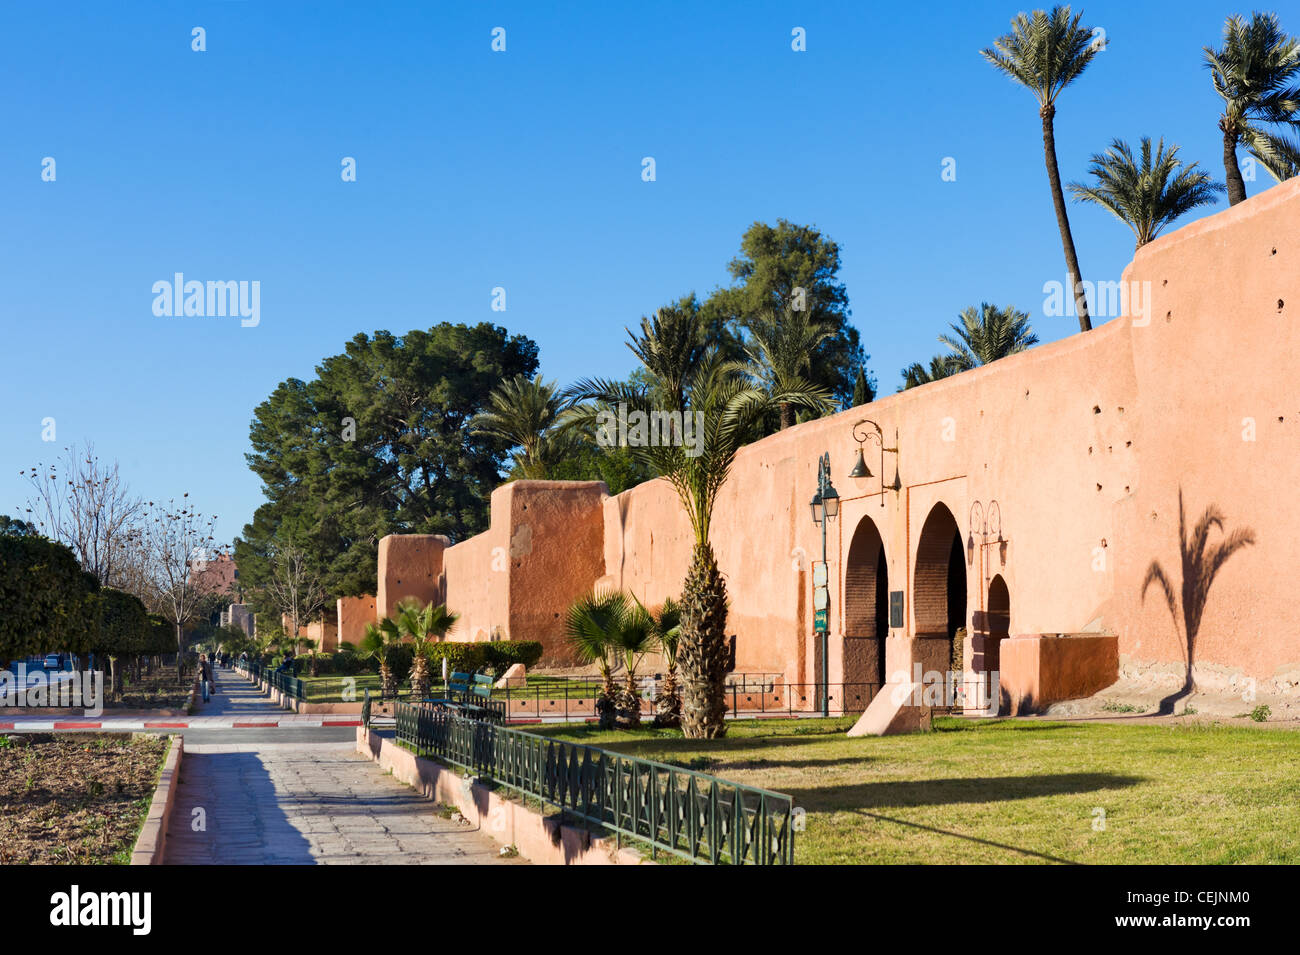 Old city walls surrounding the Medina district, Marrakech, Morocco, North Africa - Stock Image